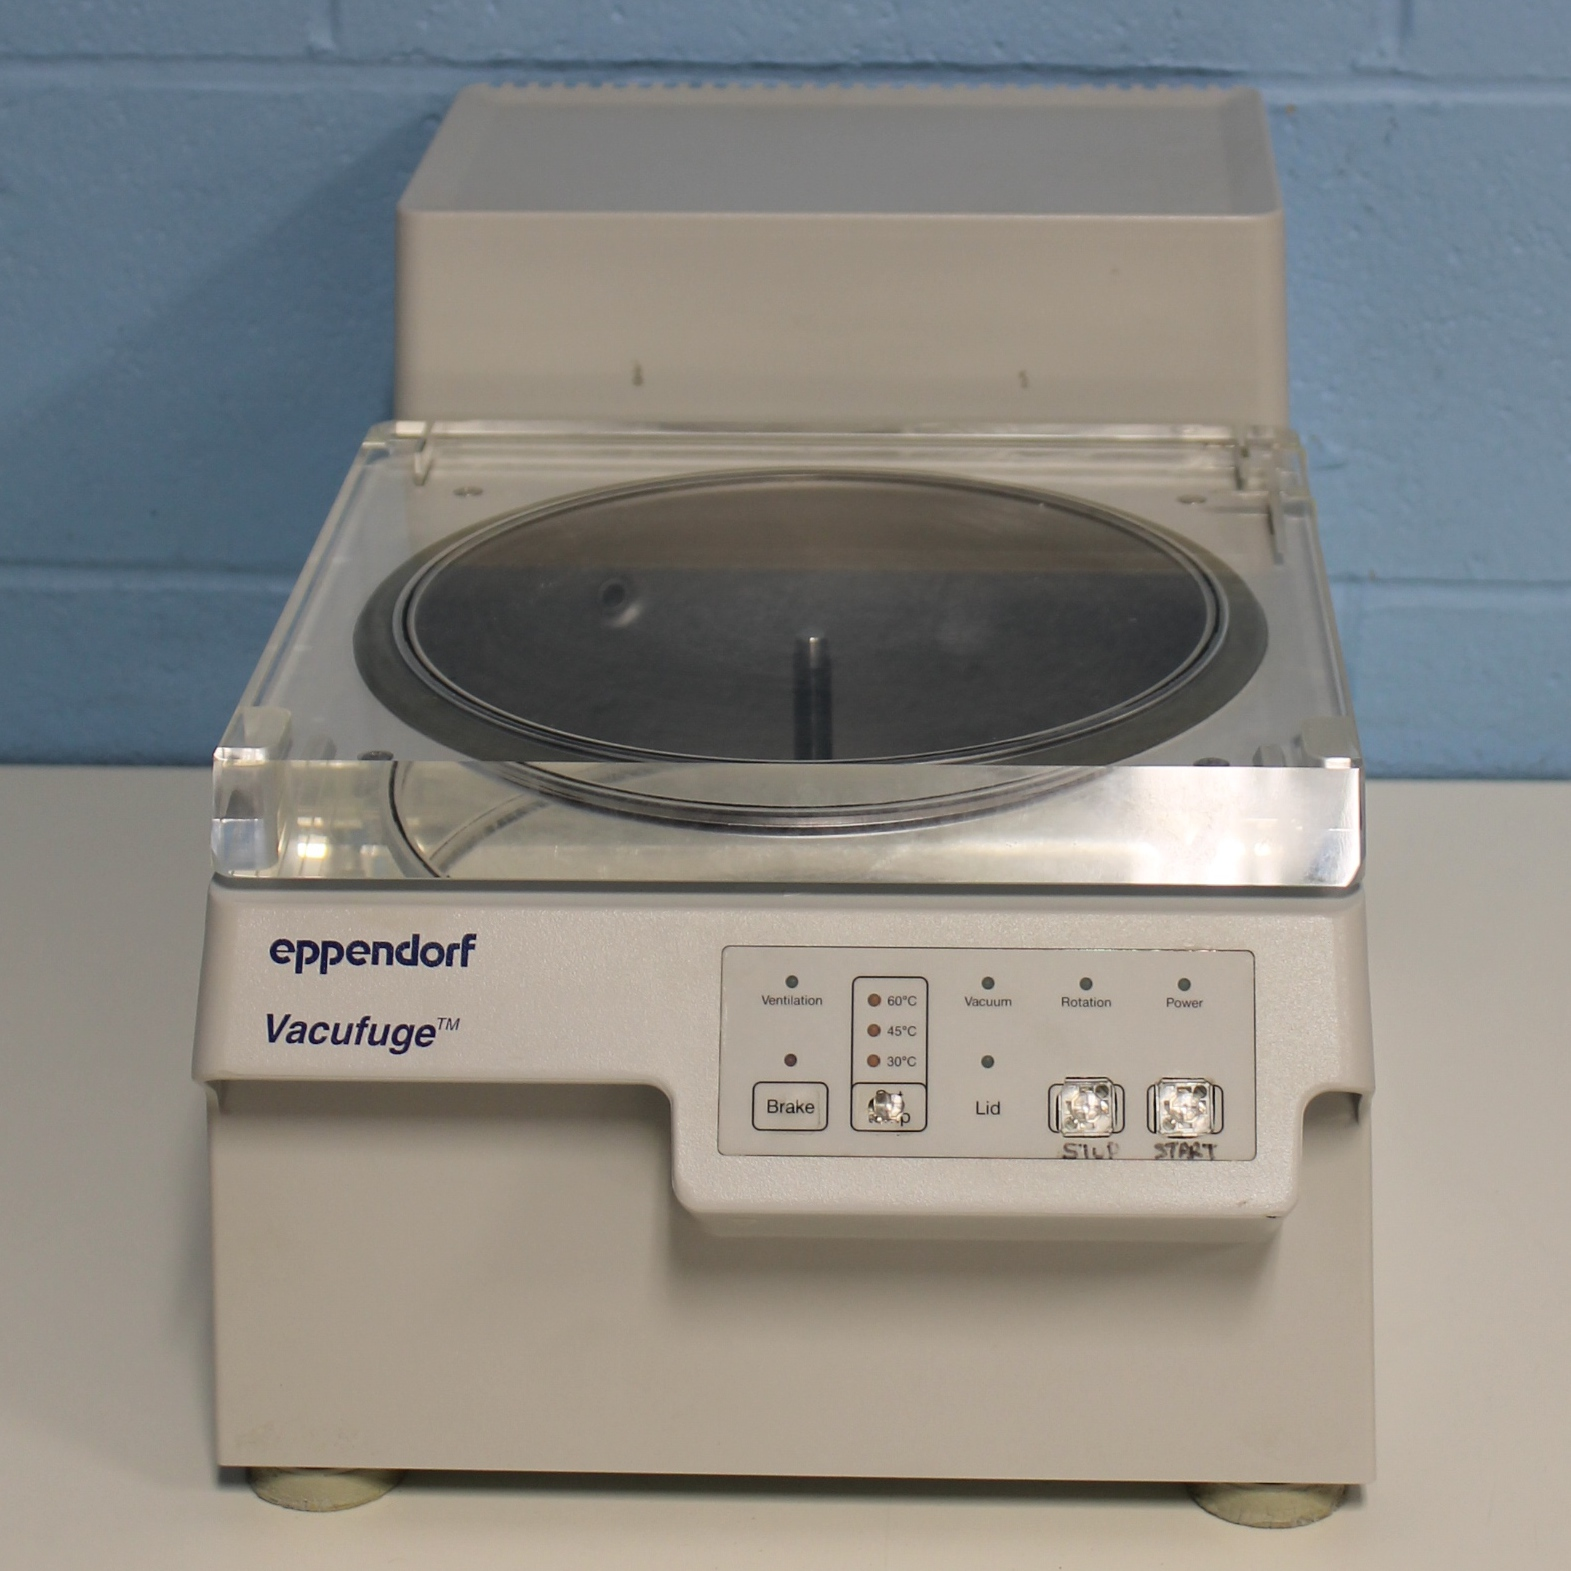 Eppendorf 5301 Vacufuge Vacuum Concentrator Image